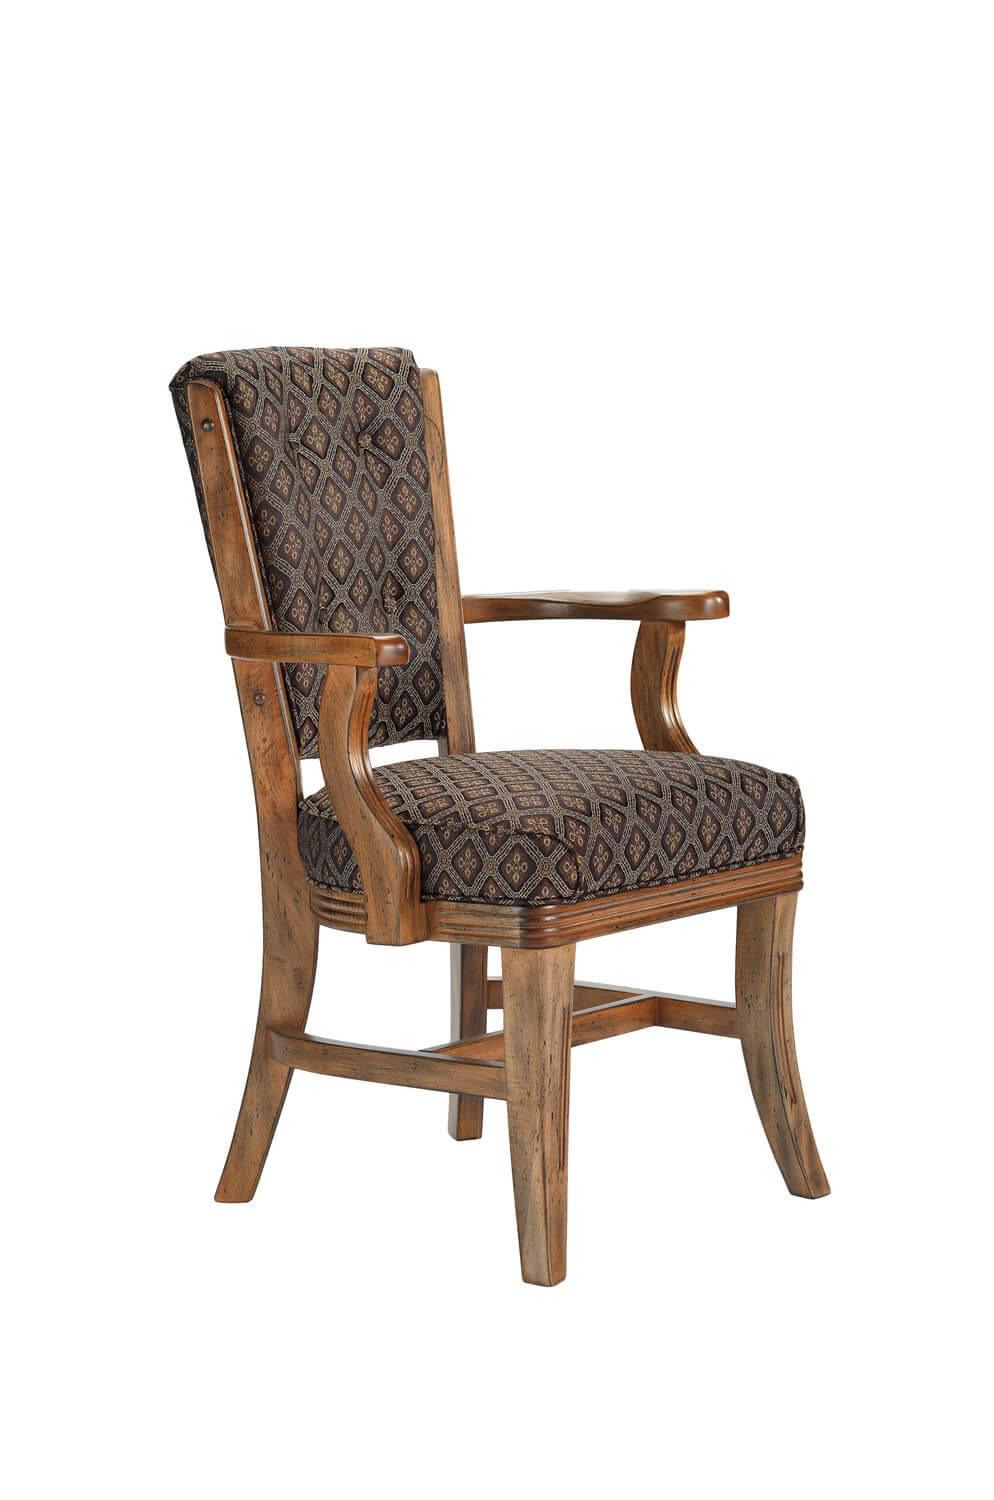 960 Maple Wood Upholstered High Back Dining Chair with Arms